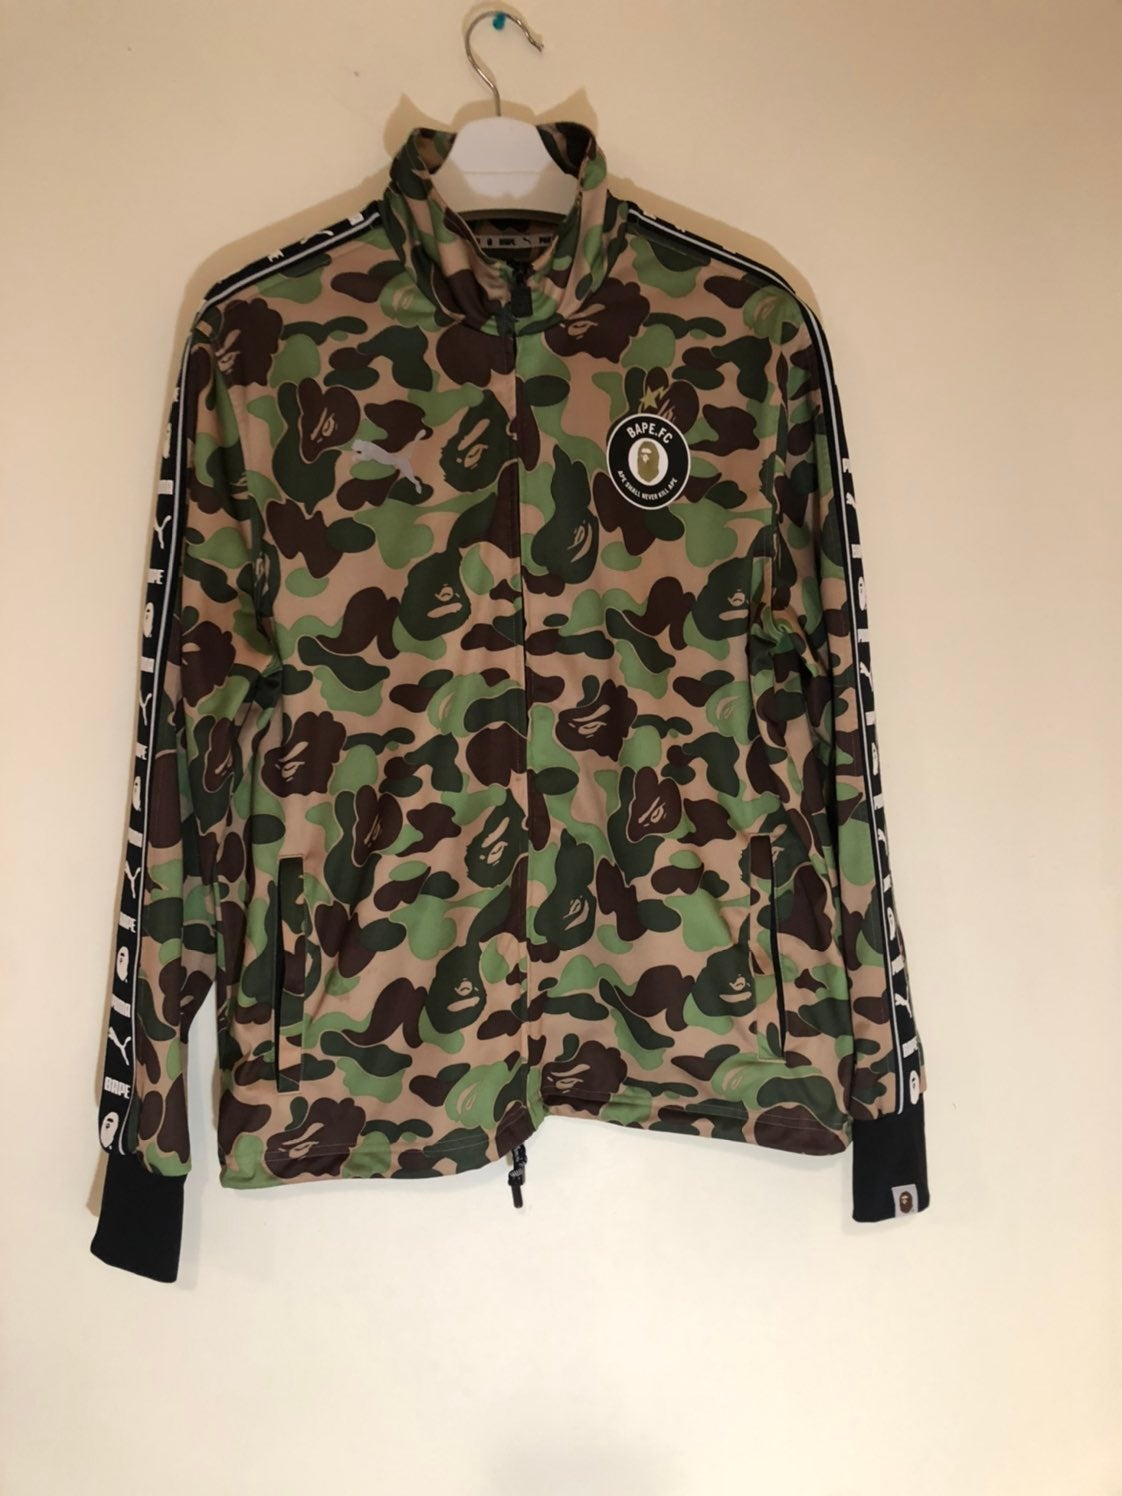 Bape Puma ABC Camo Training Jacket Large